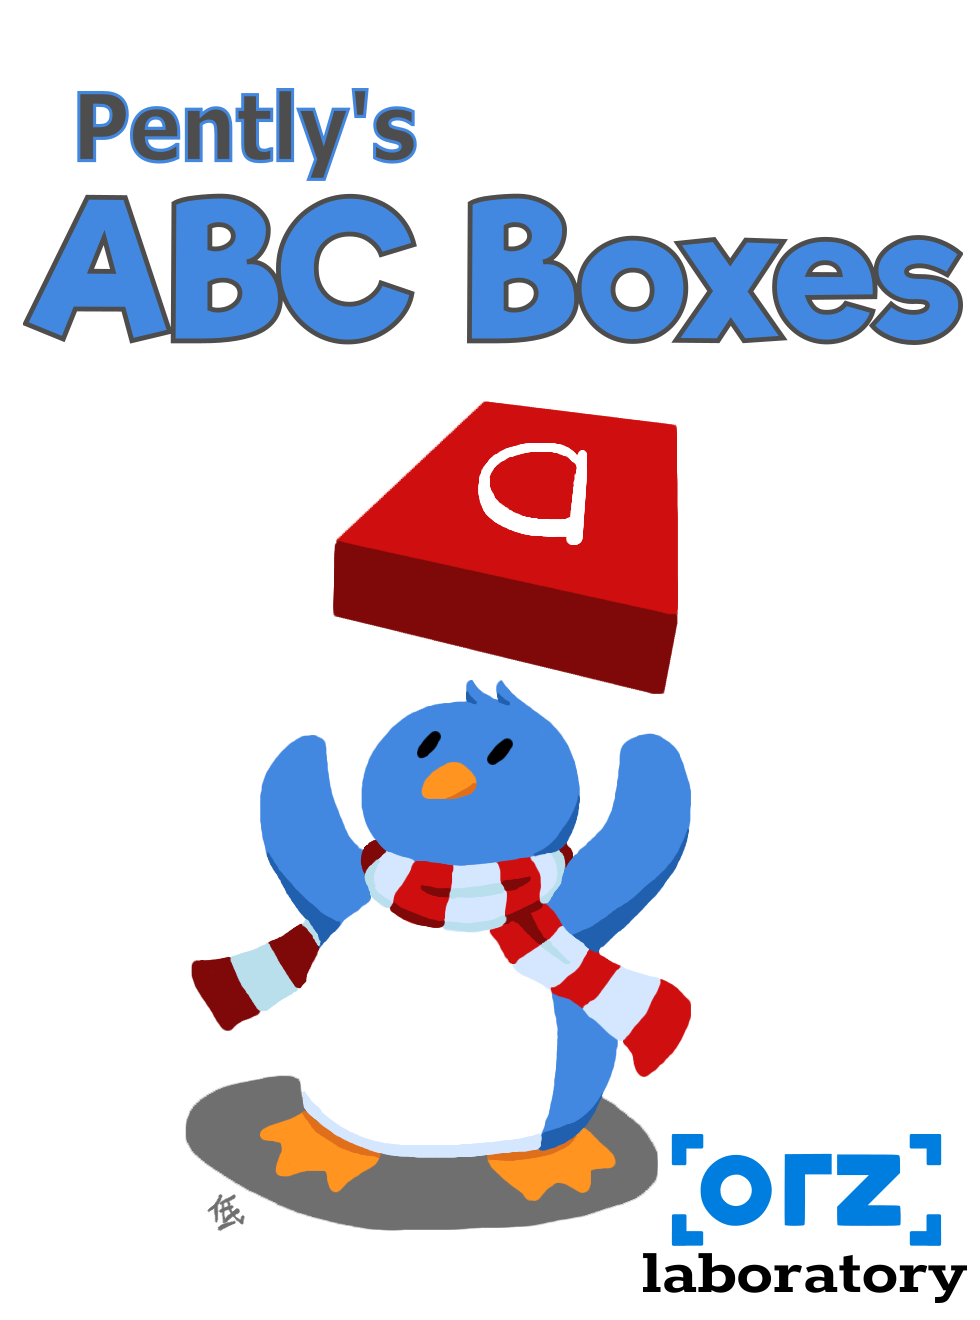 ABC Boxes box art